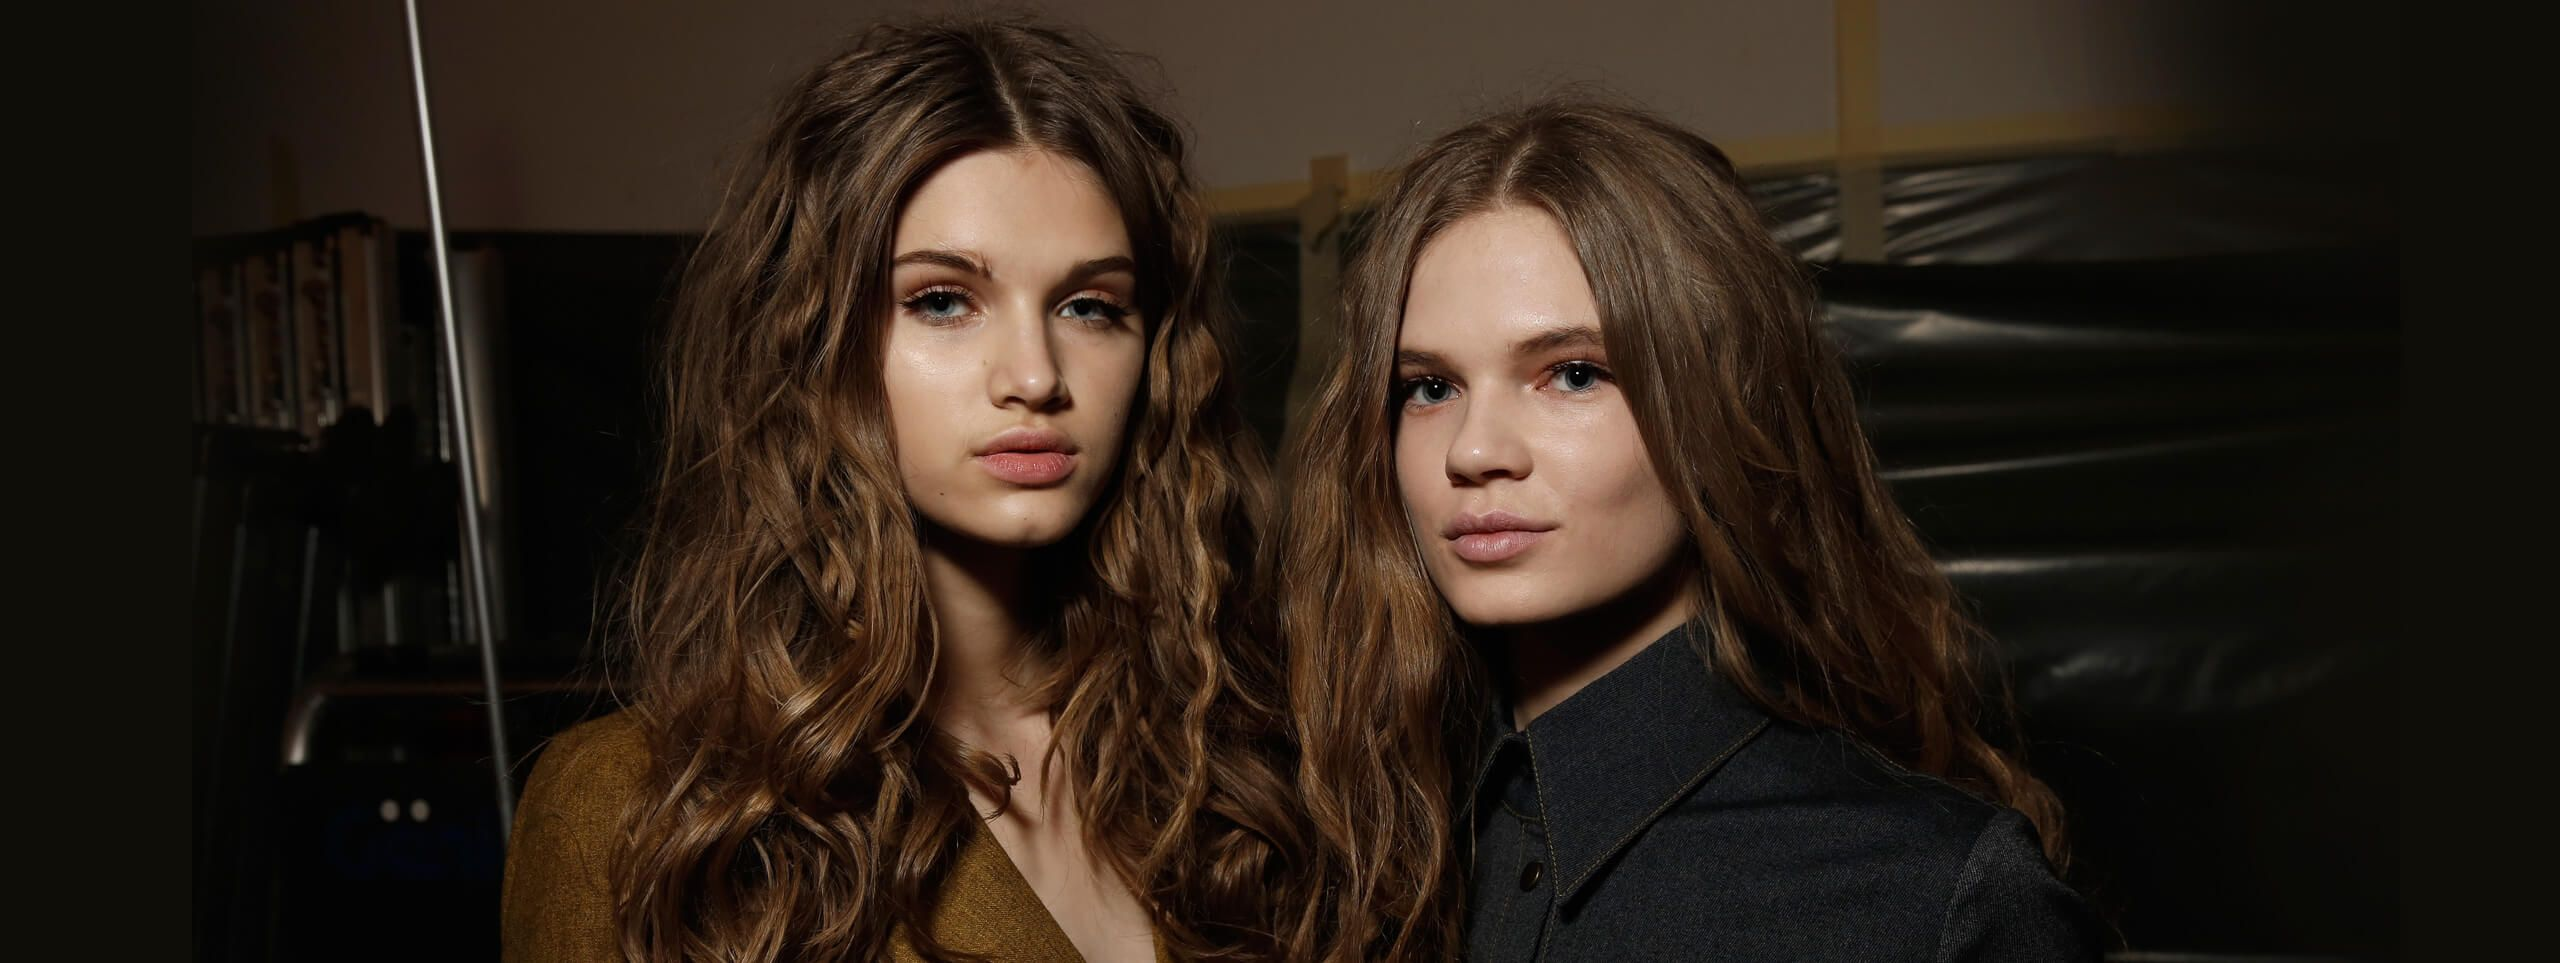 Brunette models wear loose curly hairstyle with flat roots